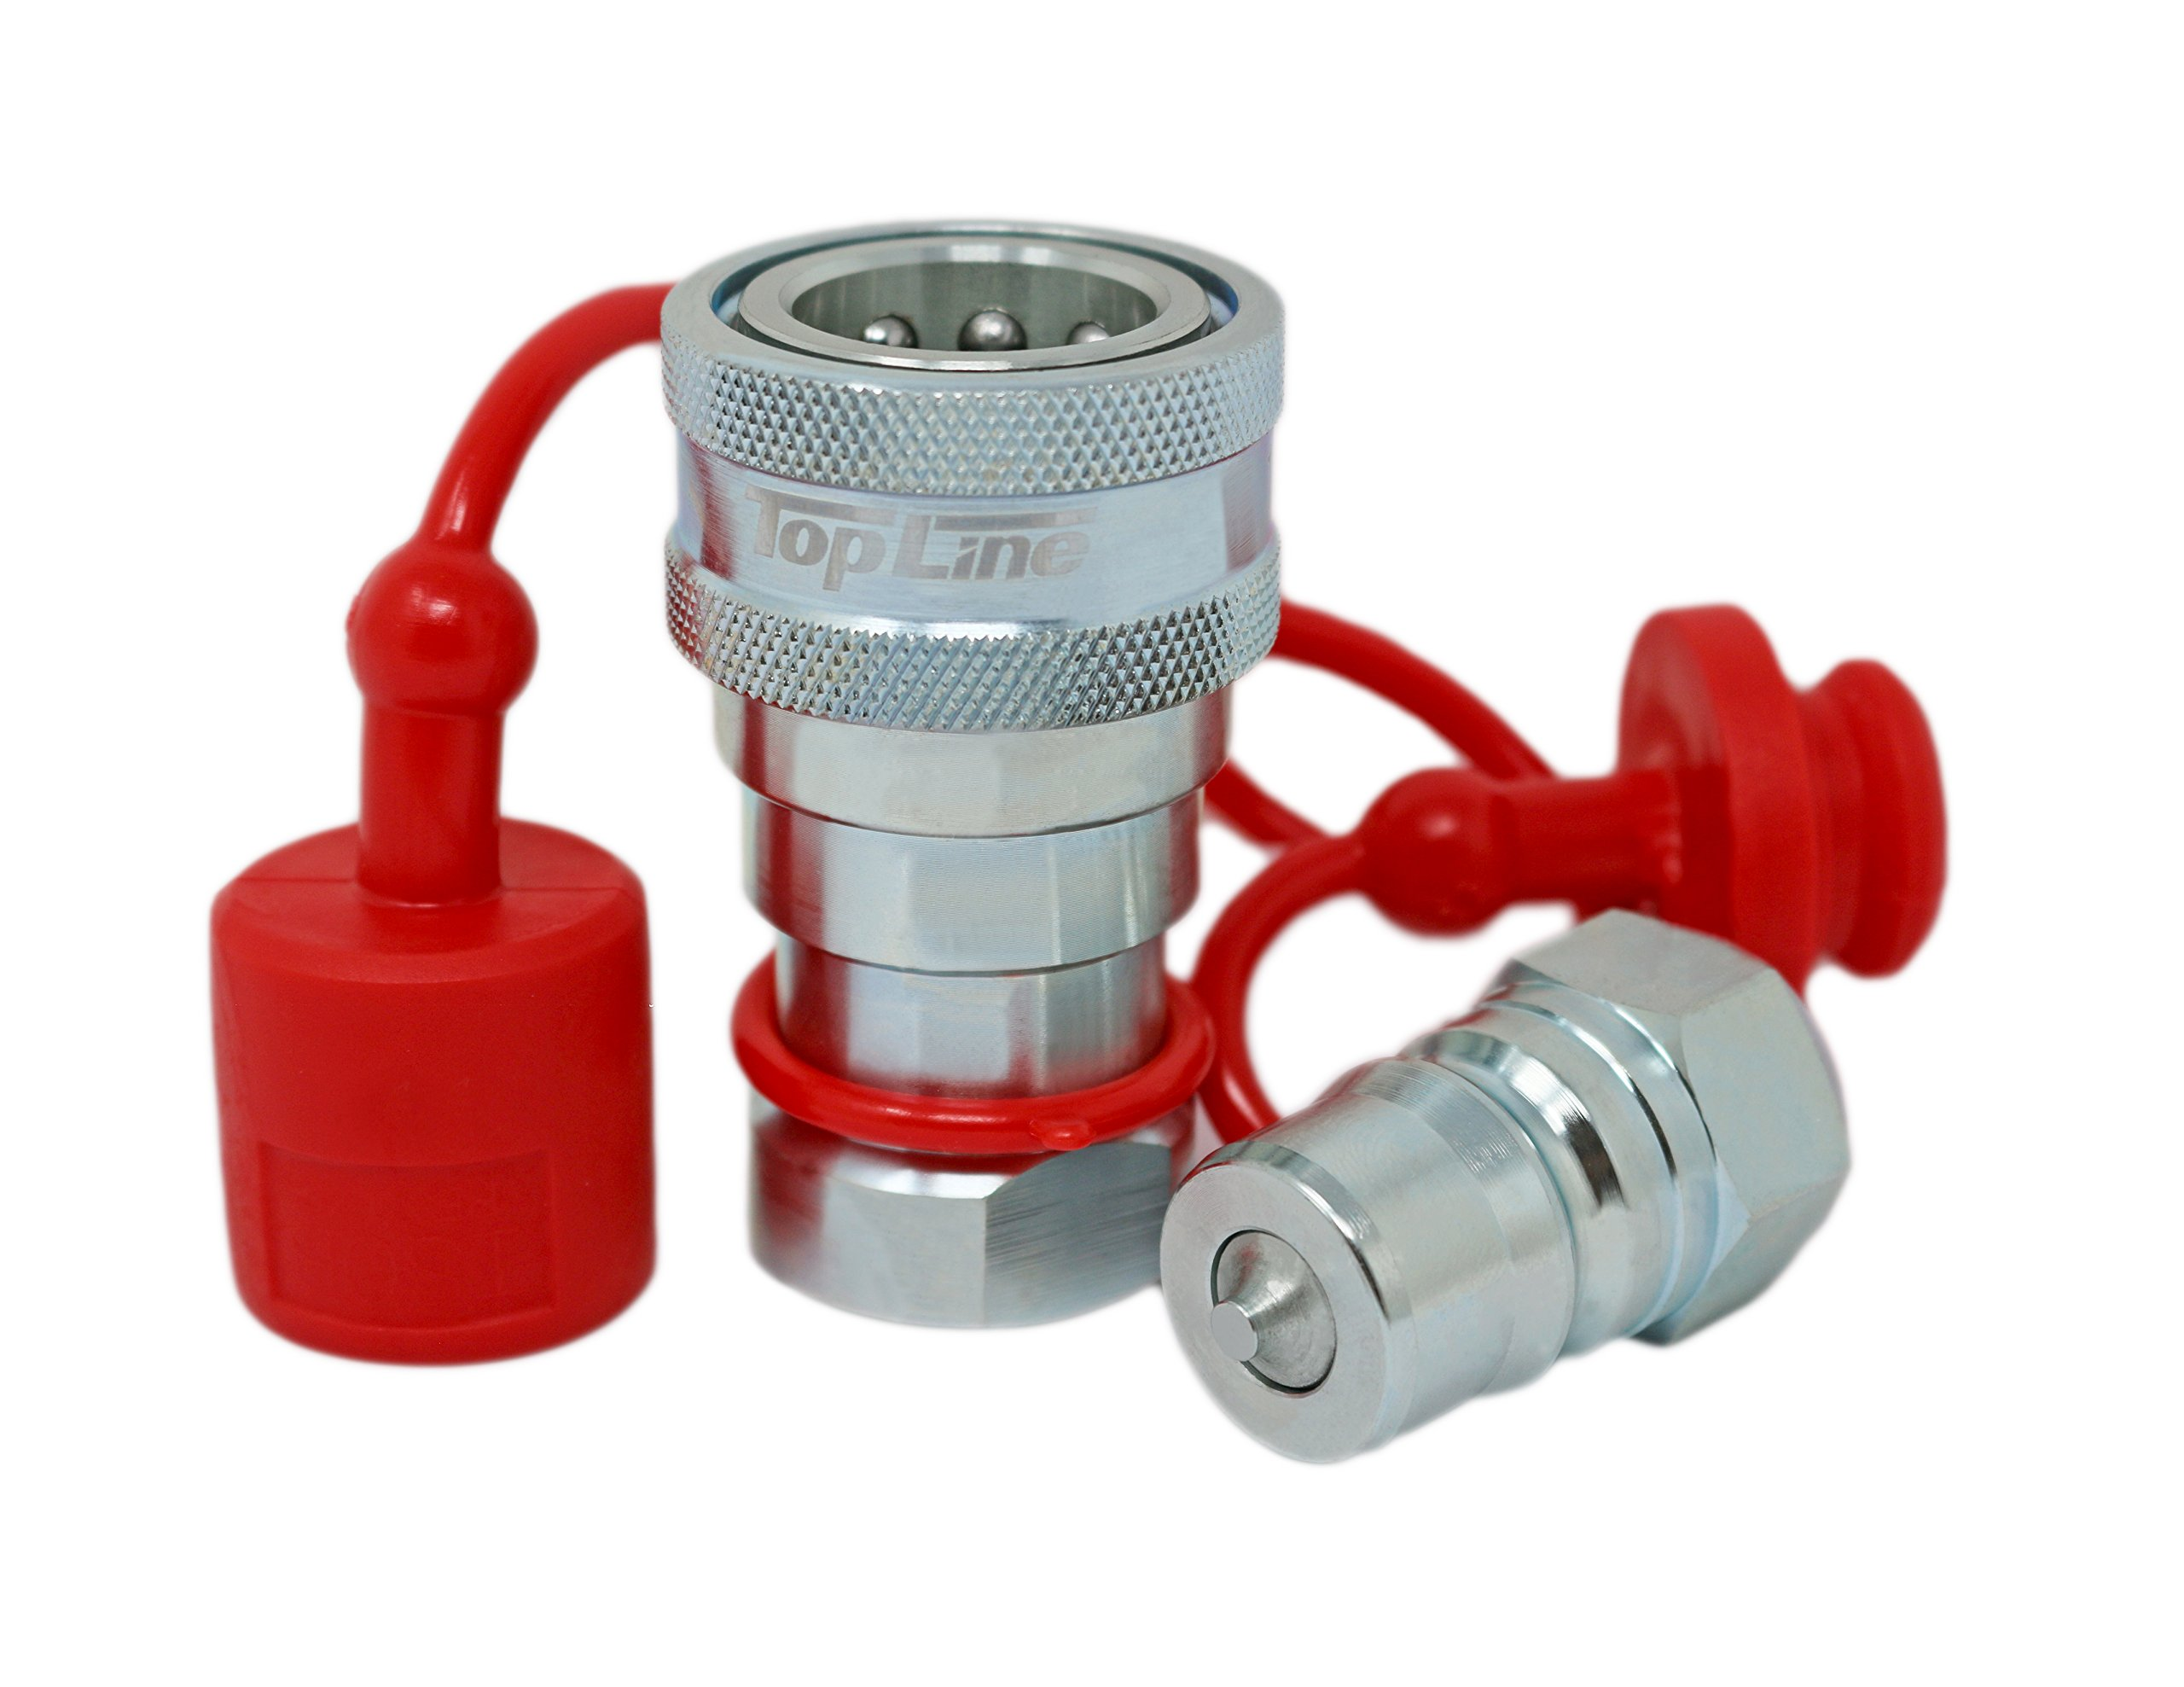 TL70 1/4'' NPT Thread Hydraulic Coupler Set ISO 7241-B 1/4 Body Poppet Bobcat Skid Steer Coupling with Dust Caps